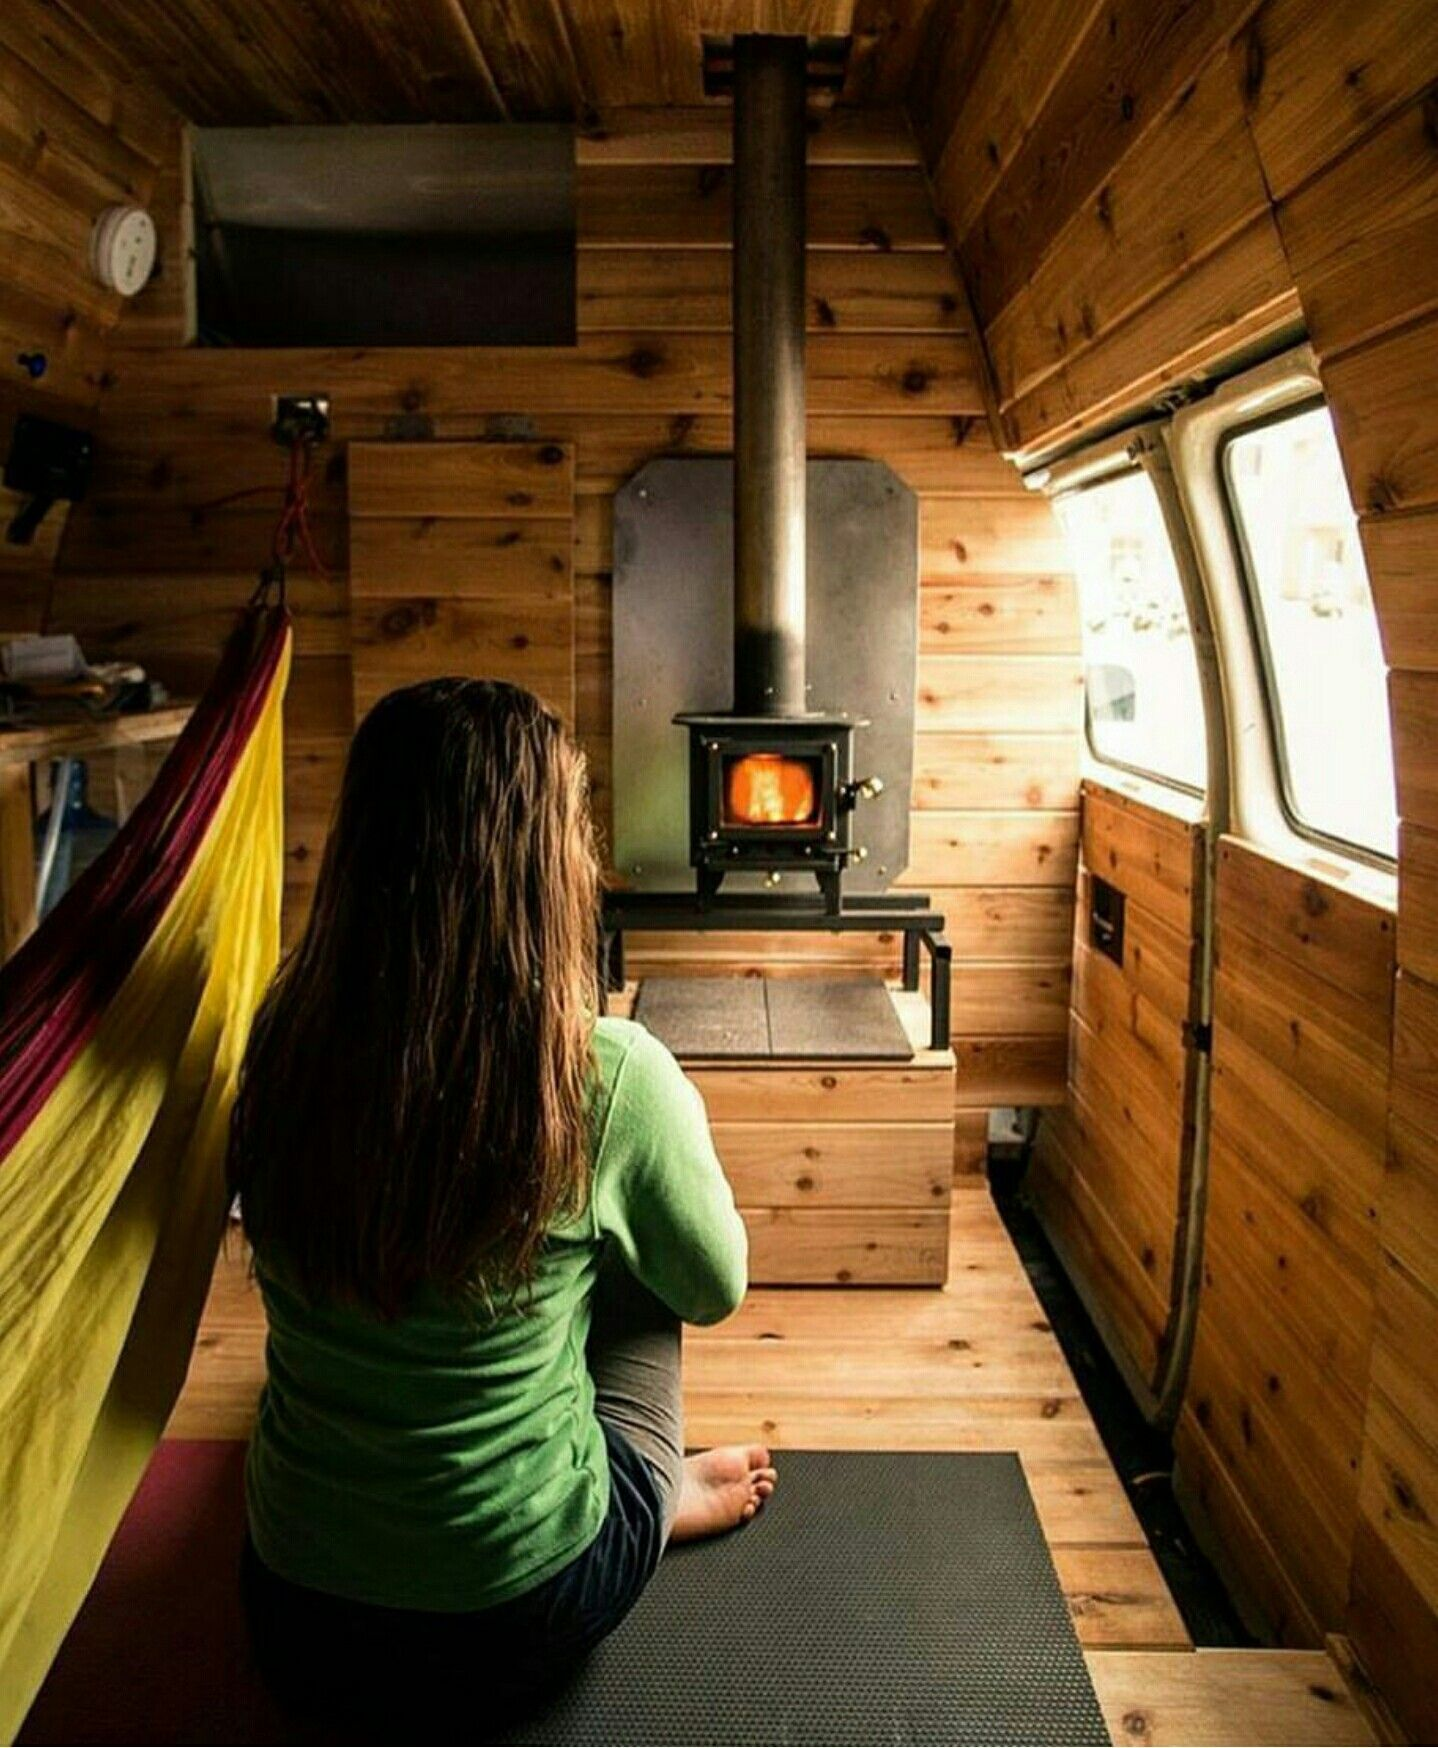 van life how to van crafter wohnmobil campingbus und. Black Bedroom Furniture Sets. Home Design Ideas